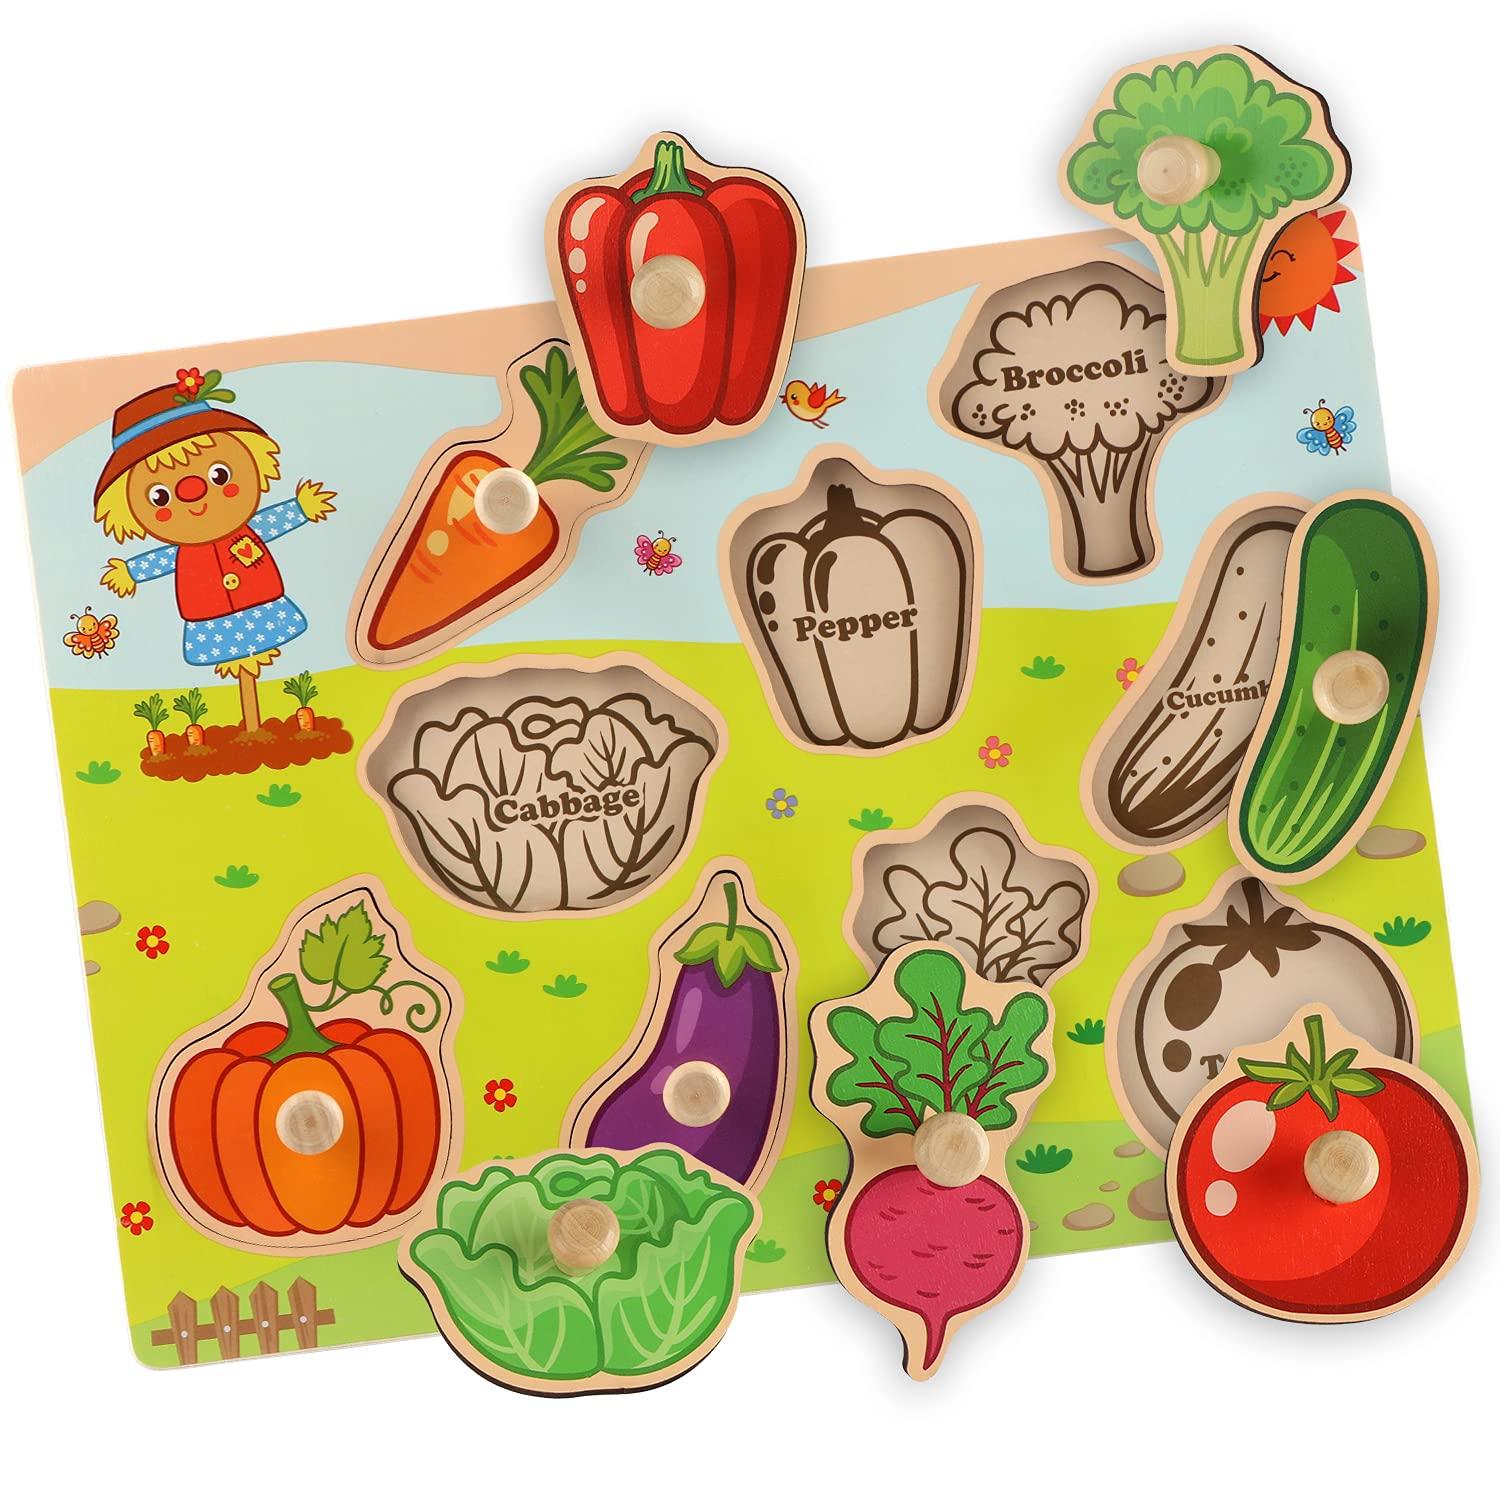 BeanGenius Toddler Puzzles, Learning Toys for Toddlers 1-3 Early Preschool Educational Wooden Puzzle Toys for Toddlers Gift for Boys Girls-Vegetables